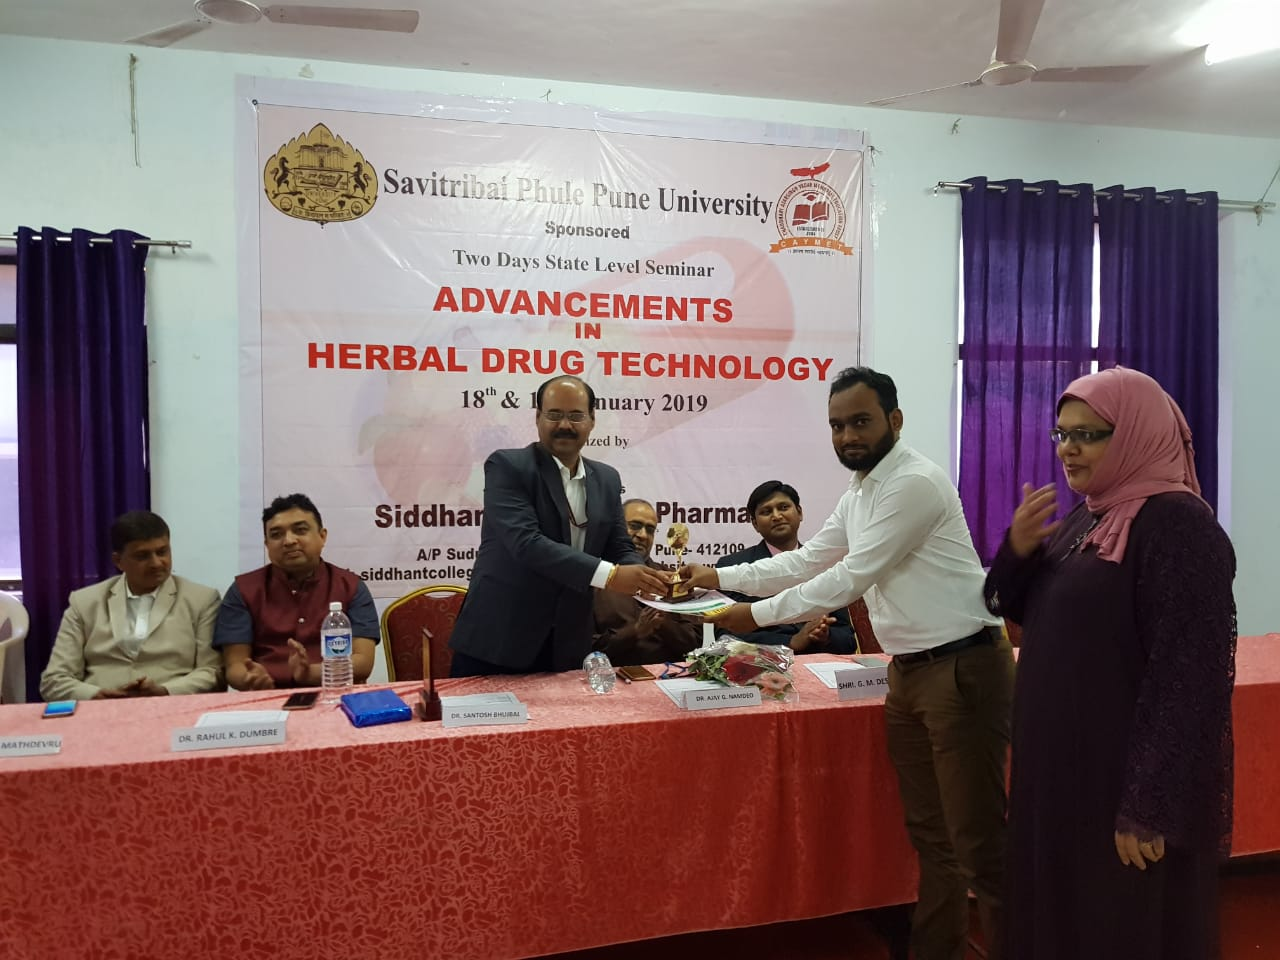 Poster Presentation on Advancements in Herbal Drug Technology